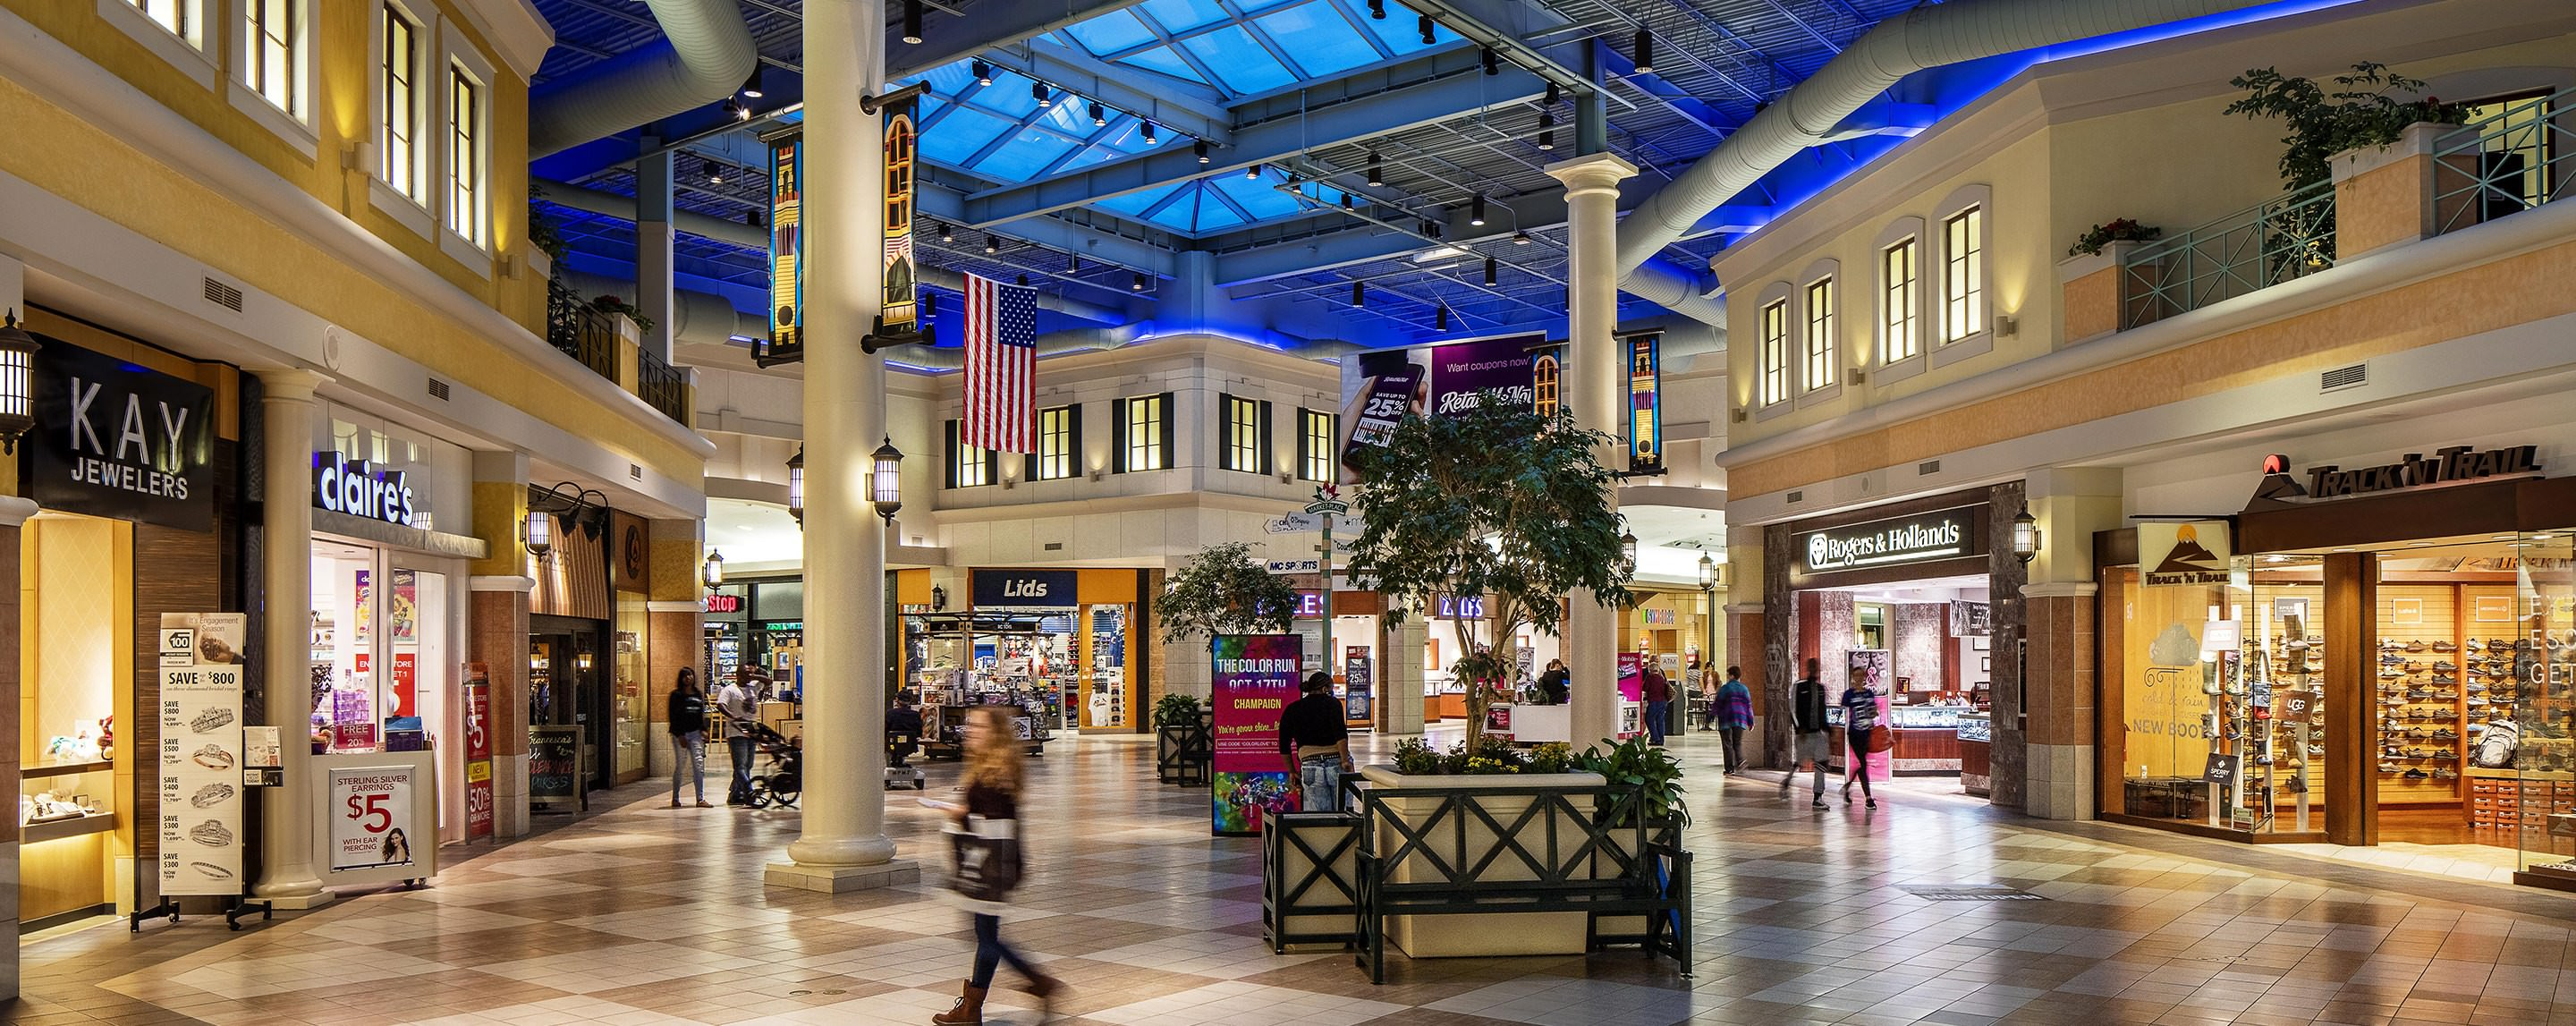 A variety of well lit storefronts line a multi-story mall, including Lids and Claire's.